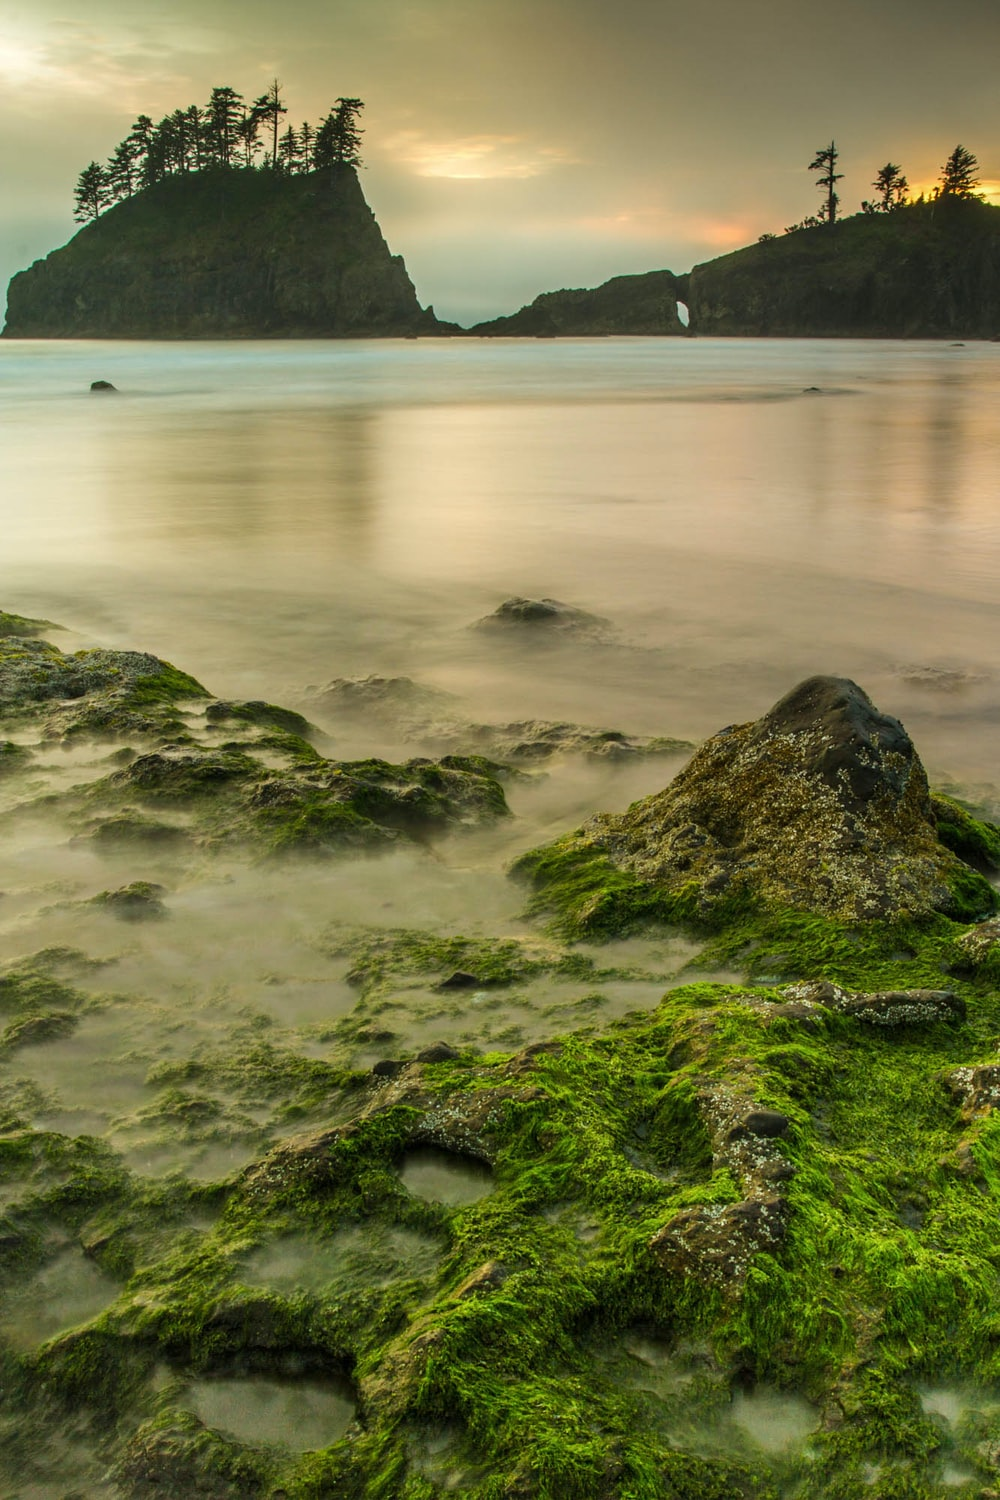 green moss on gray stones near body of water during dawn